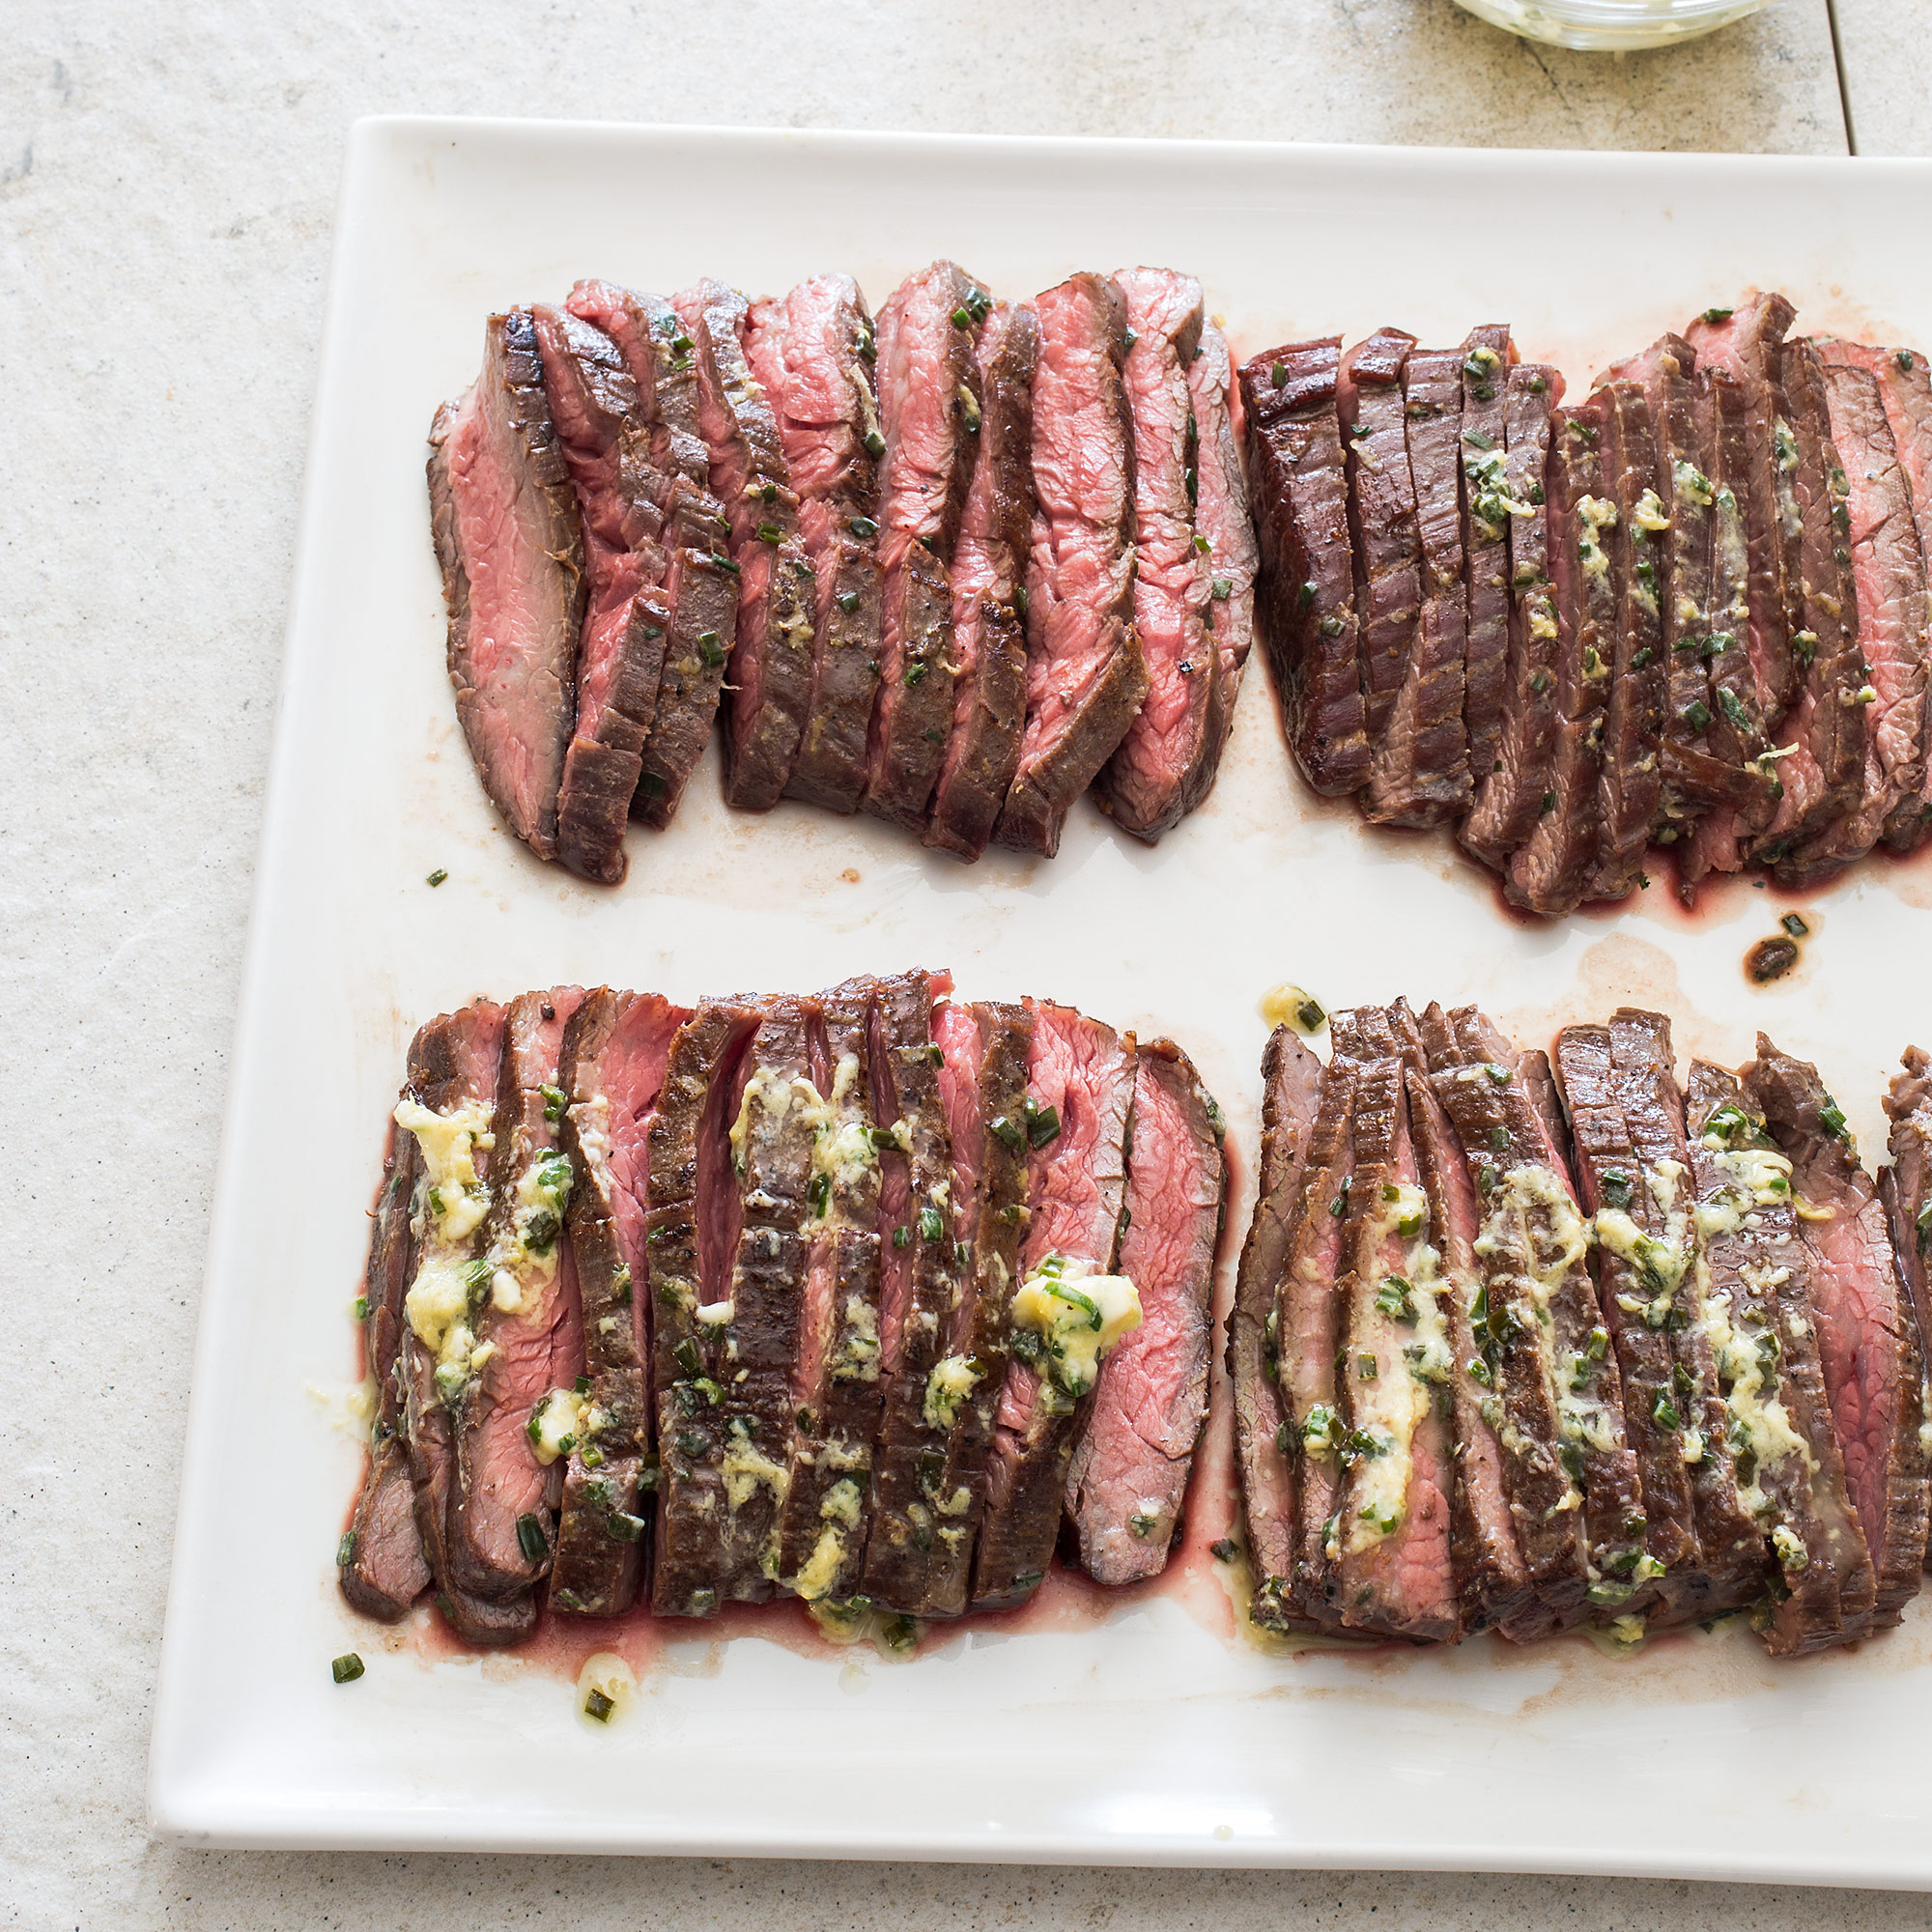 Communication on this topic: How to Cut Flank Steak, how-to-cut-flank-steak/